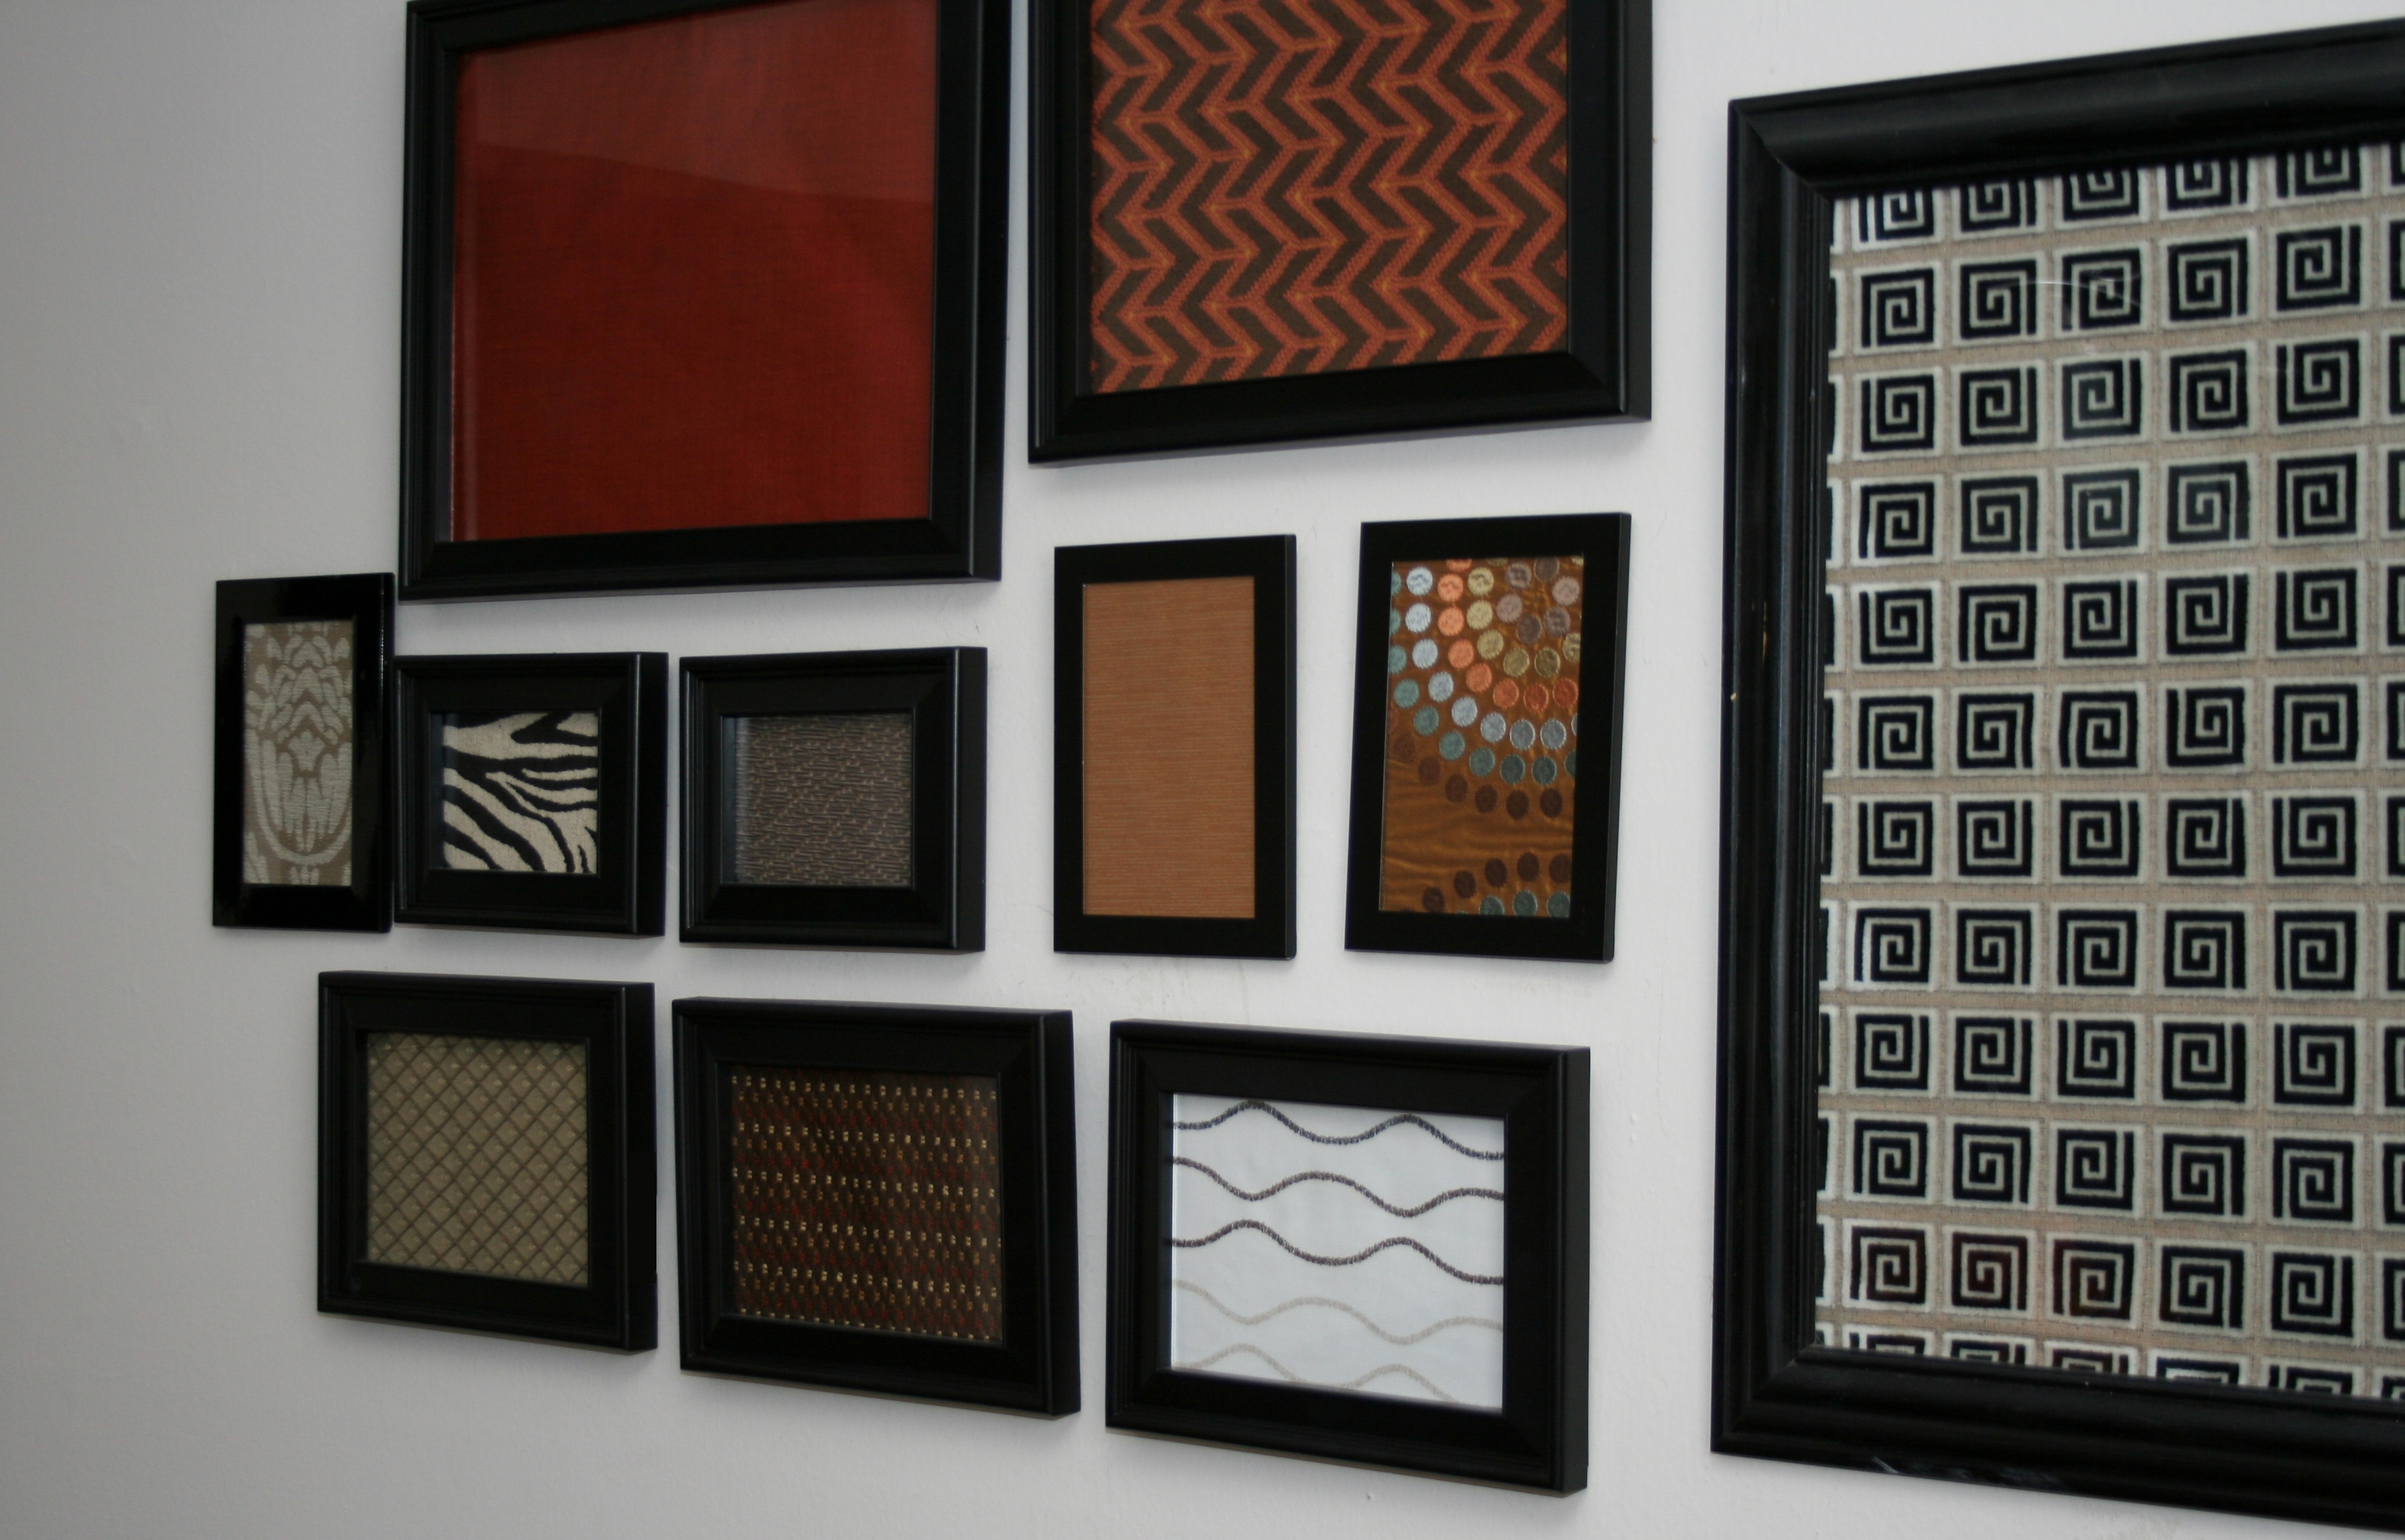 Framed Fabric Wall Art | Throughout 2017 Fabric Wall Art Frames (View 7 of 15)